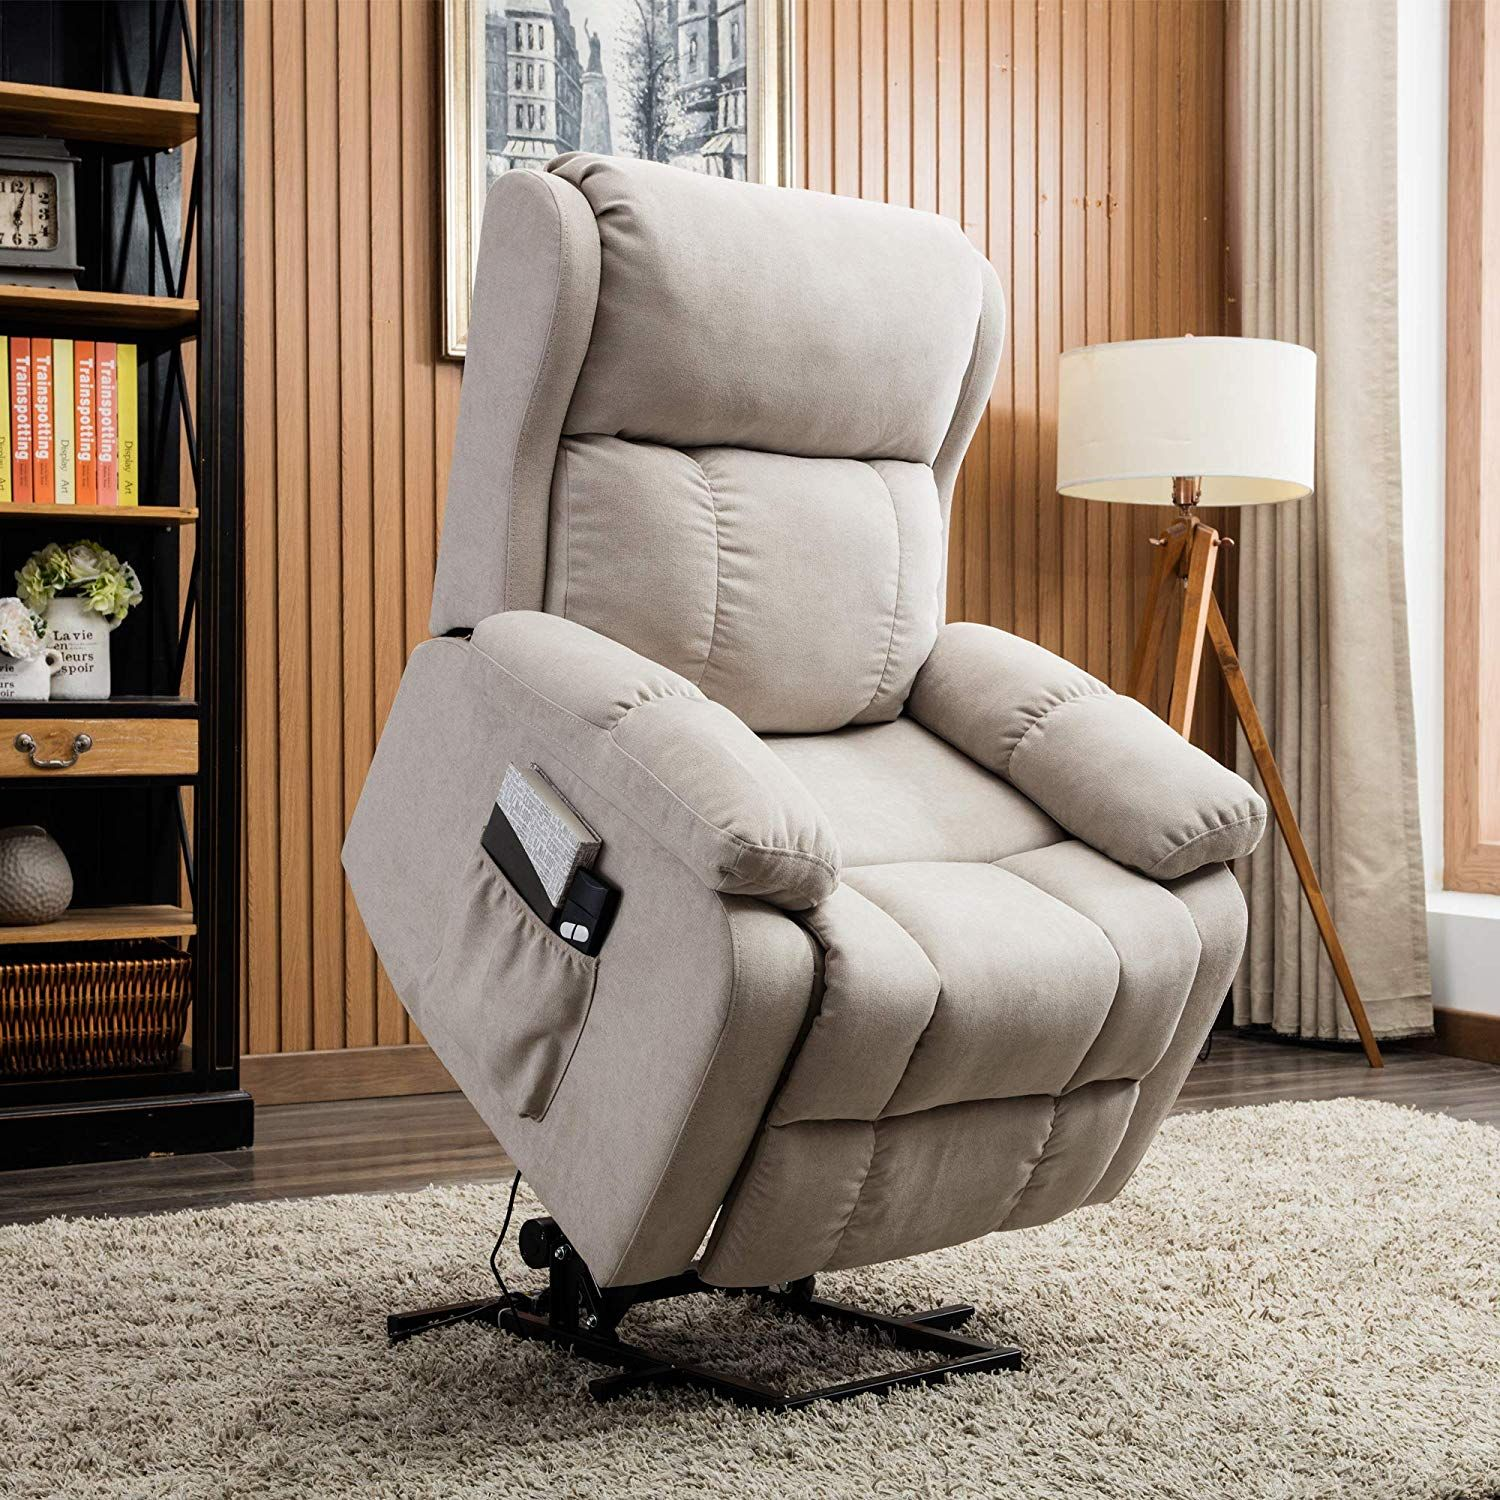 CANMOV Power Lift Recliner Chair with Remote Control